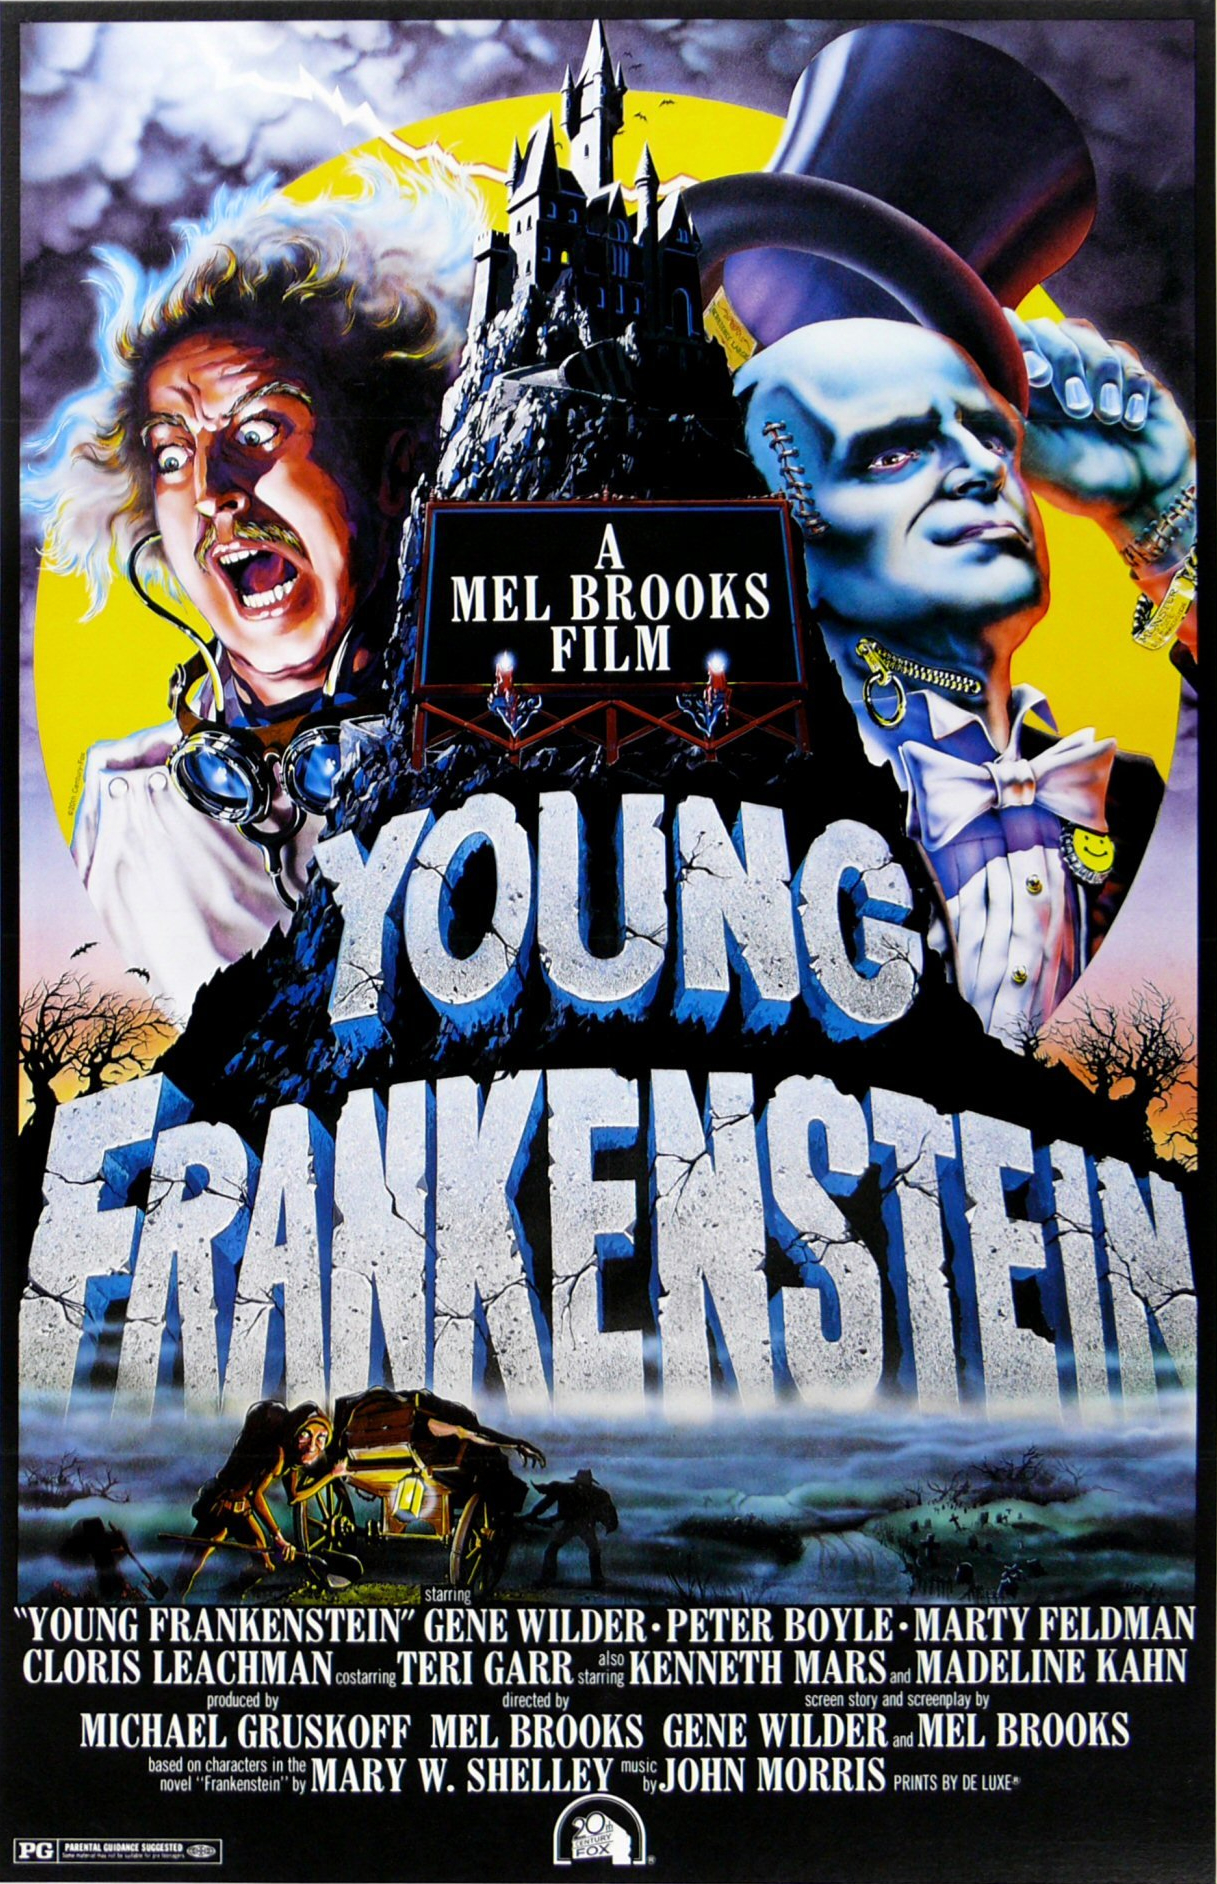 MEDIA AND MONSTERS: TWO CENTURIES OF FRANKENSTEINS: Young Frankenstein